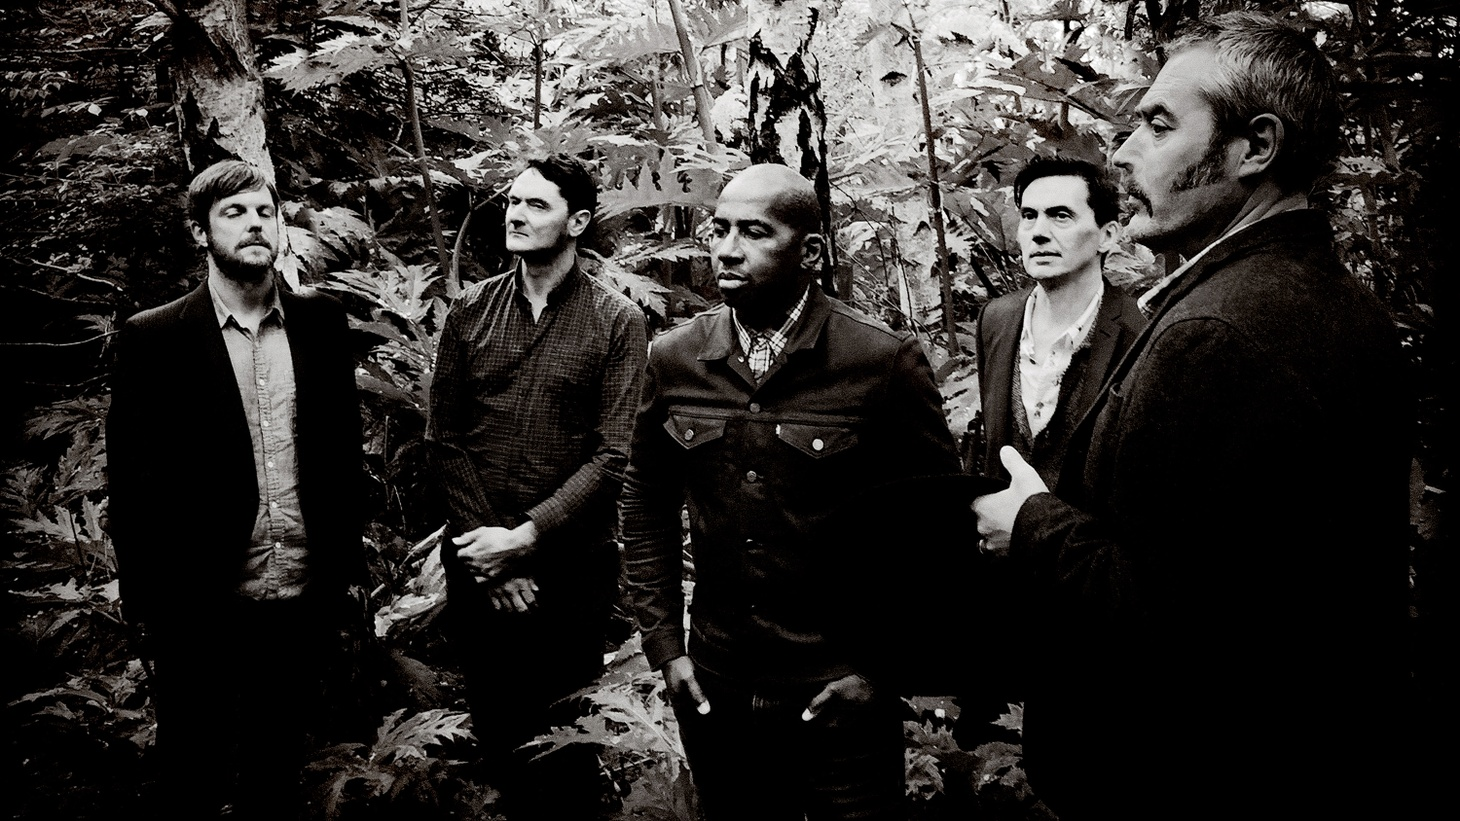 Melody makers Tindersticks have a knack for brooding ballads. Their new album is no exception.